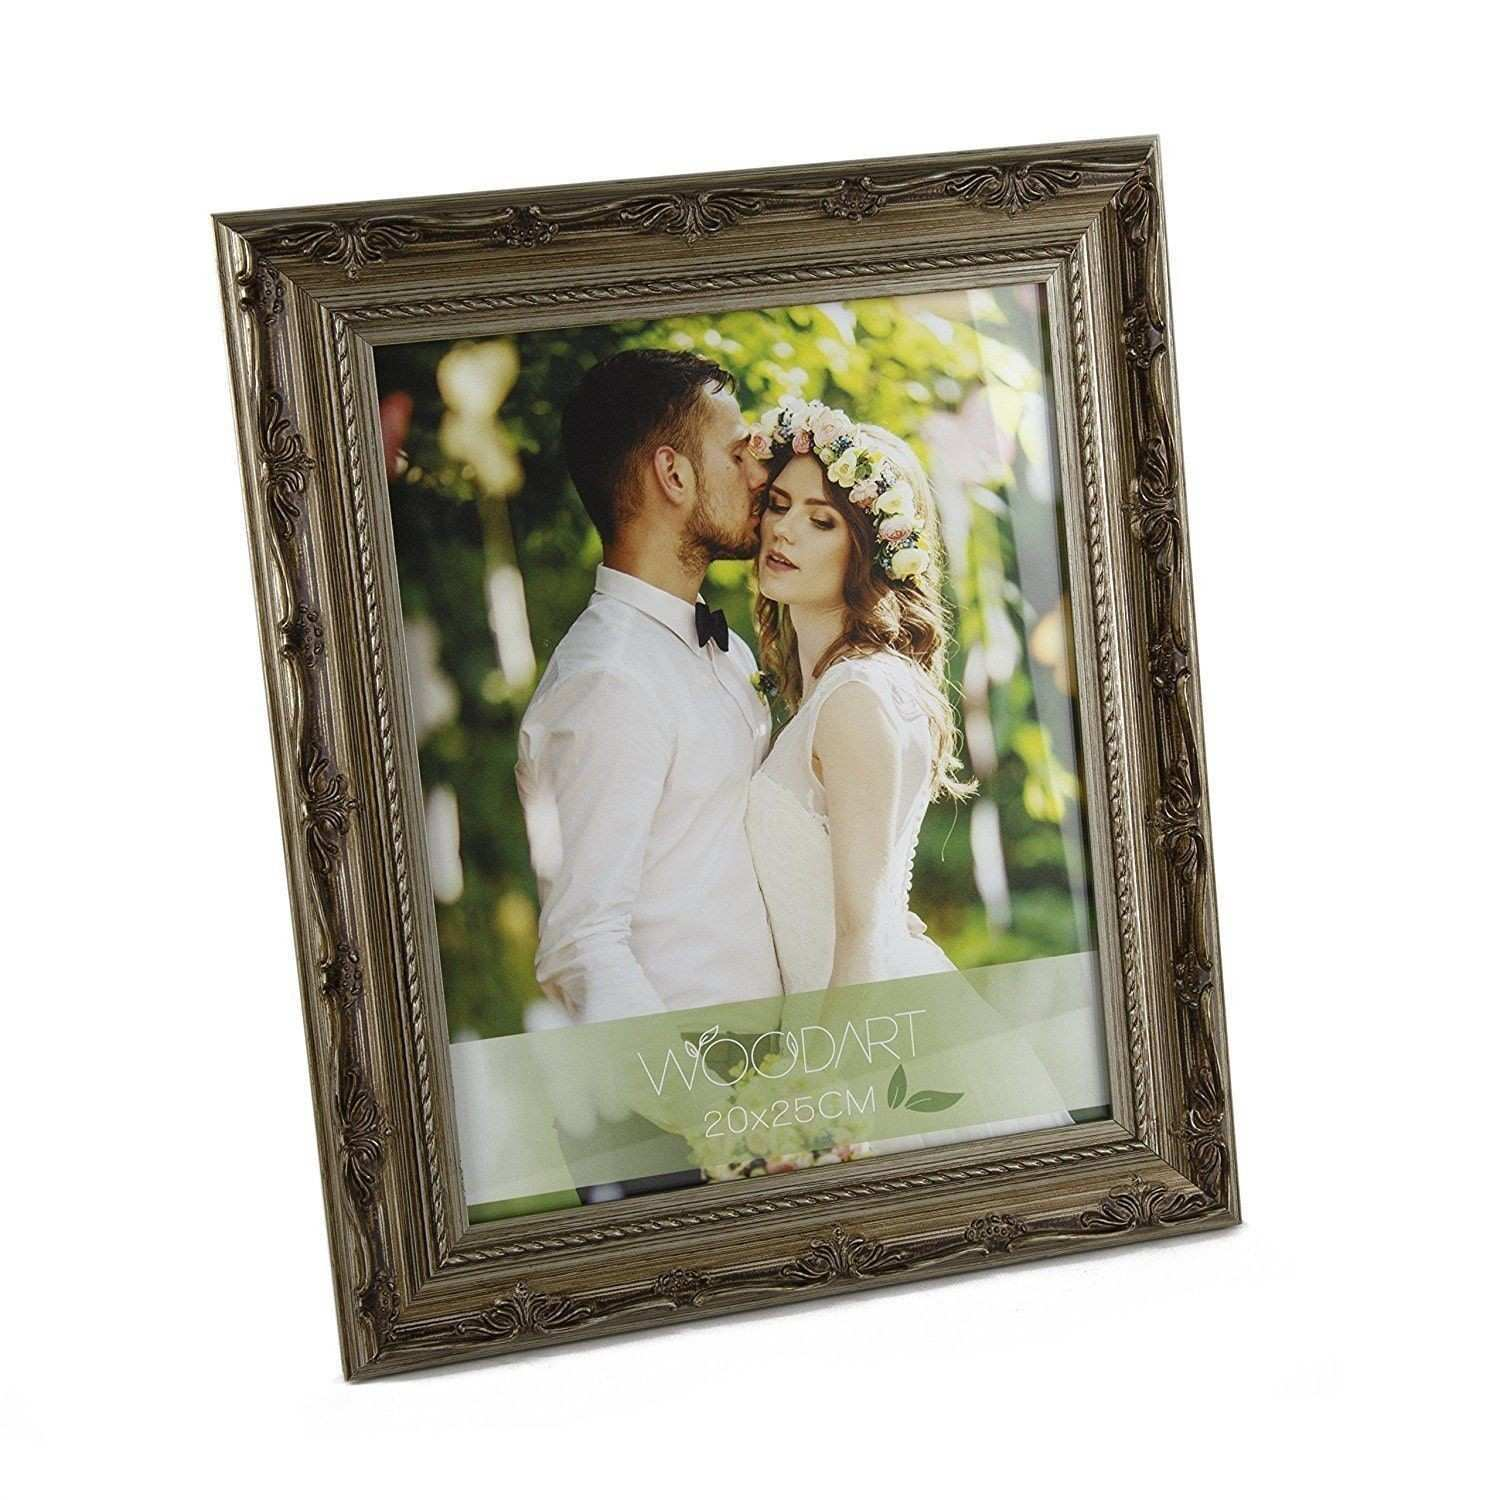 WOODART Ornate Wood Picture Frame by Wolff US